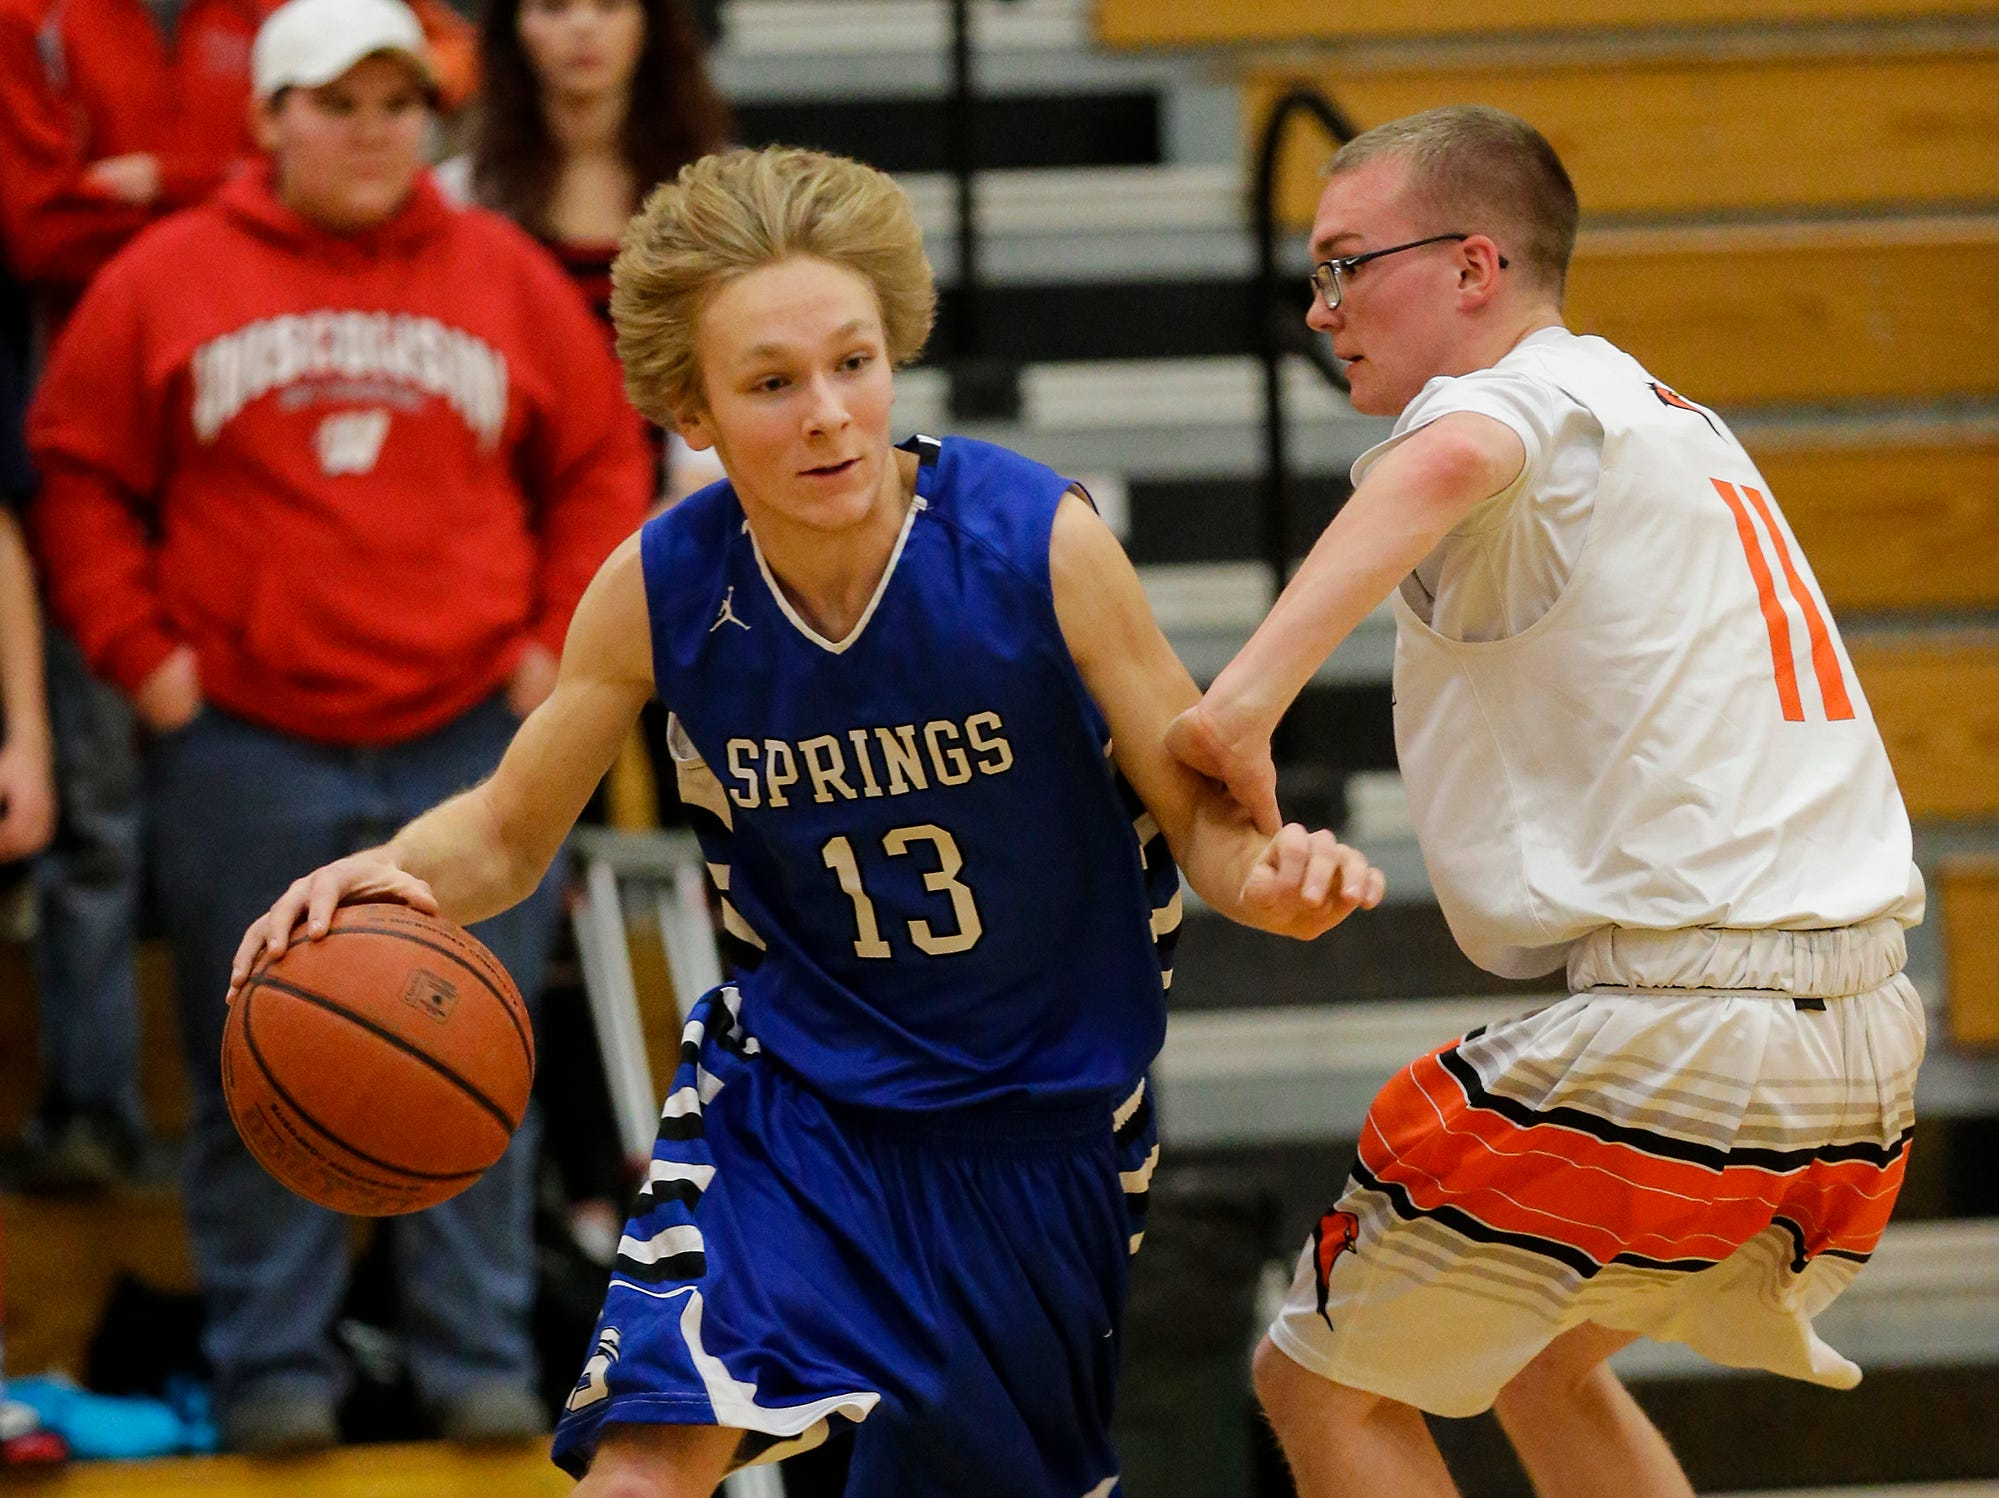 St. Mary's Springs Academy's boys basketball's Myles Ottery works his way past North Fond du Lac High School's Dillon Holbus during their game Friday, December 7, 2018 in North Fond du Lac, Wisconsin. Doug Raflik/USA TODAY NETWORK-Wisconsin